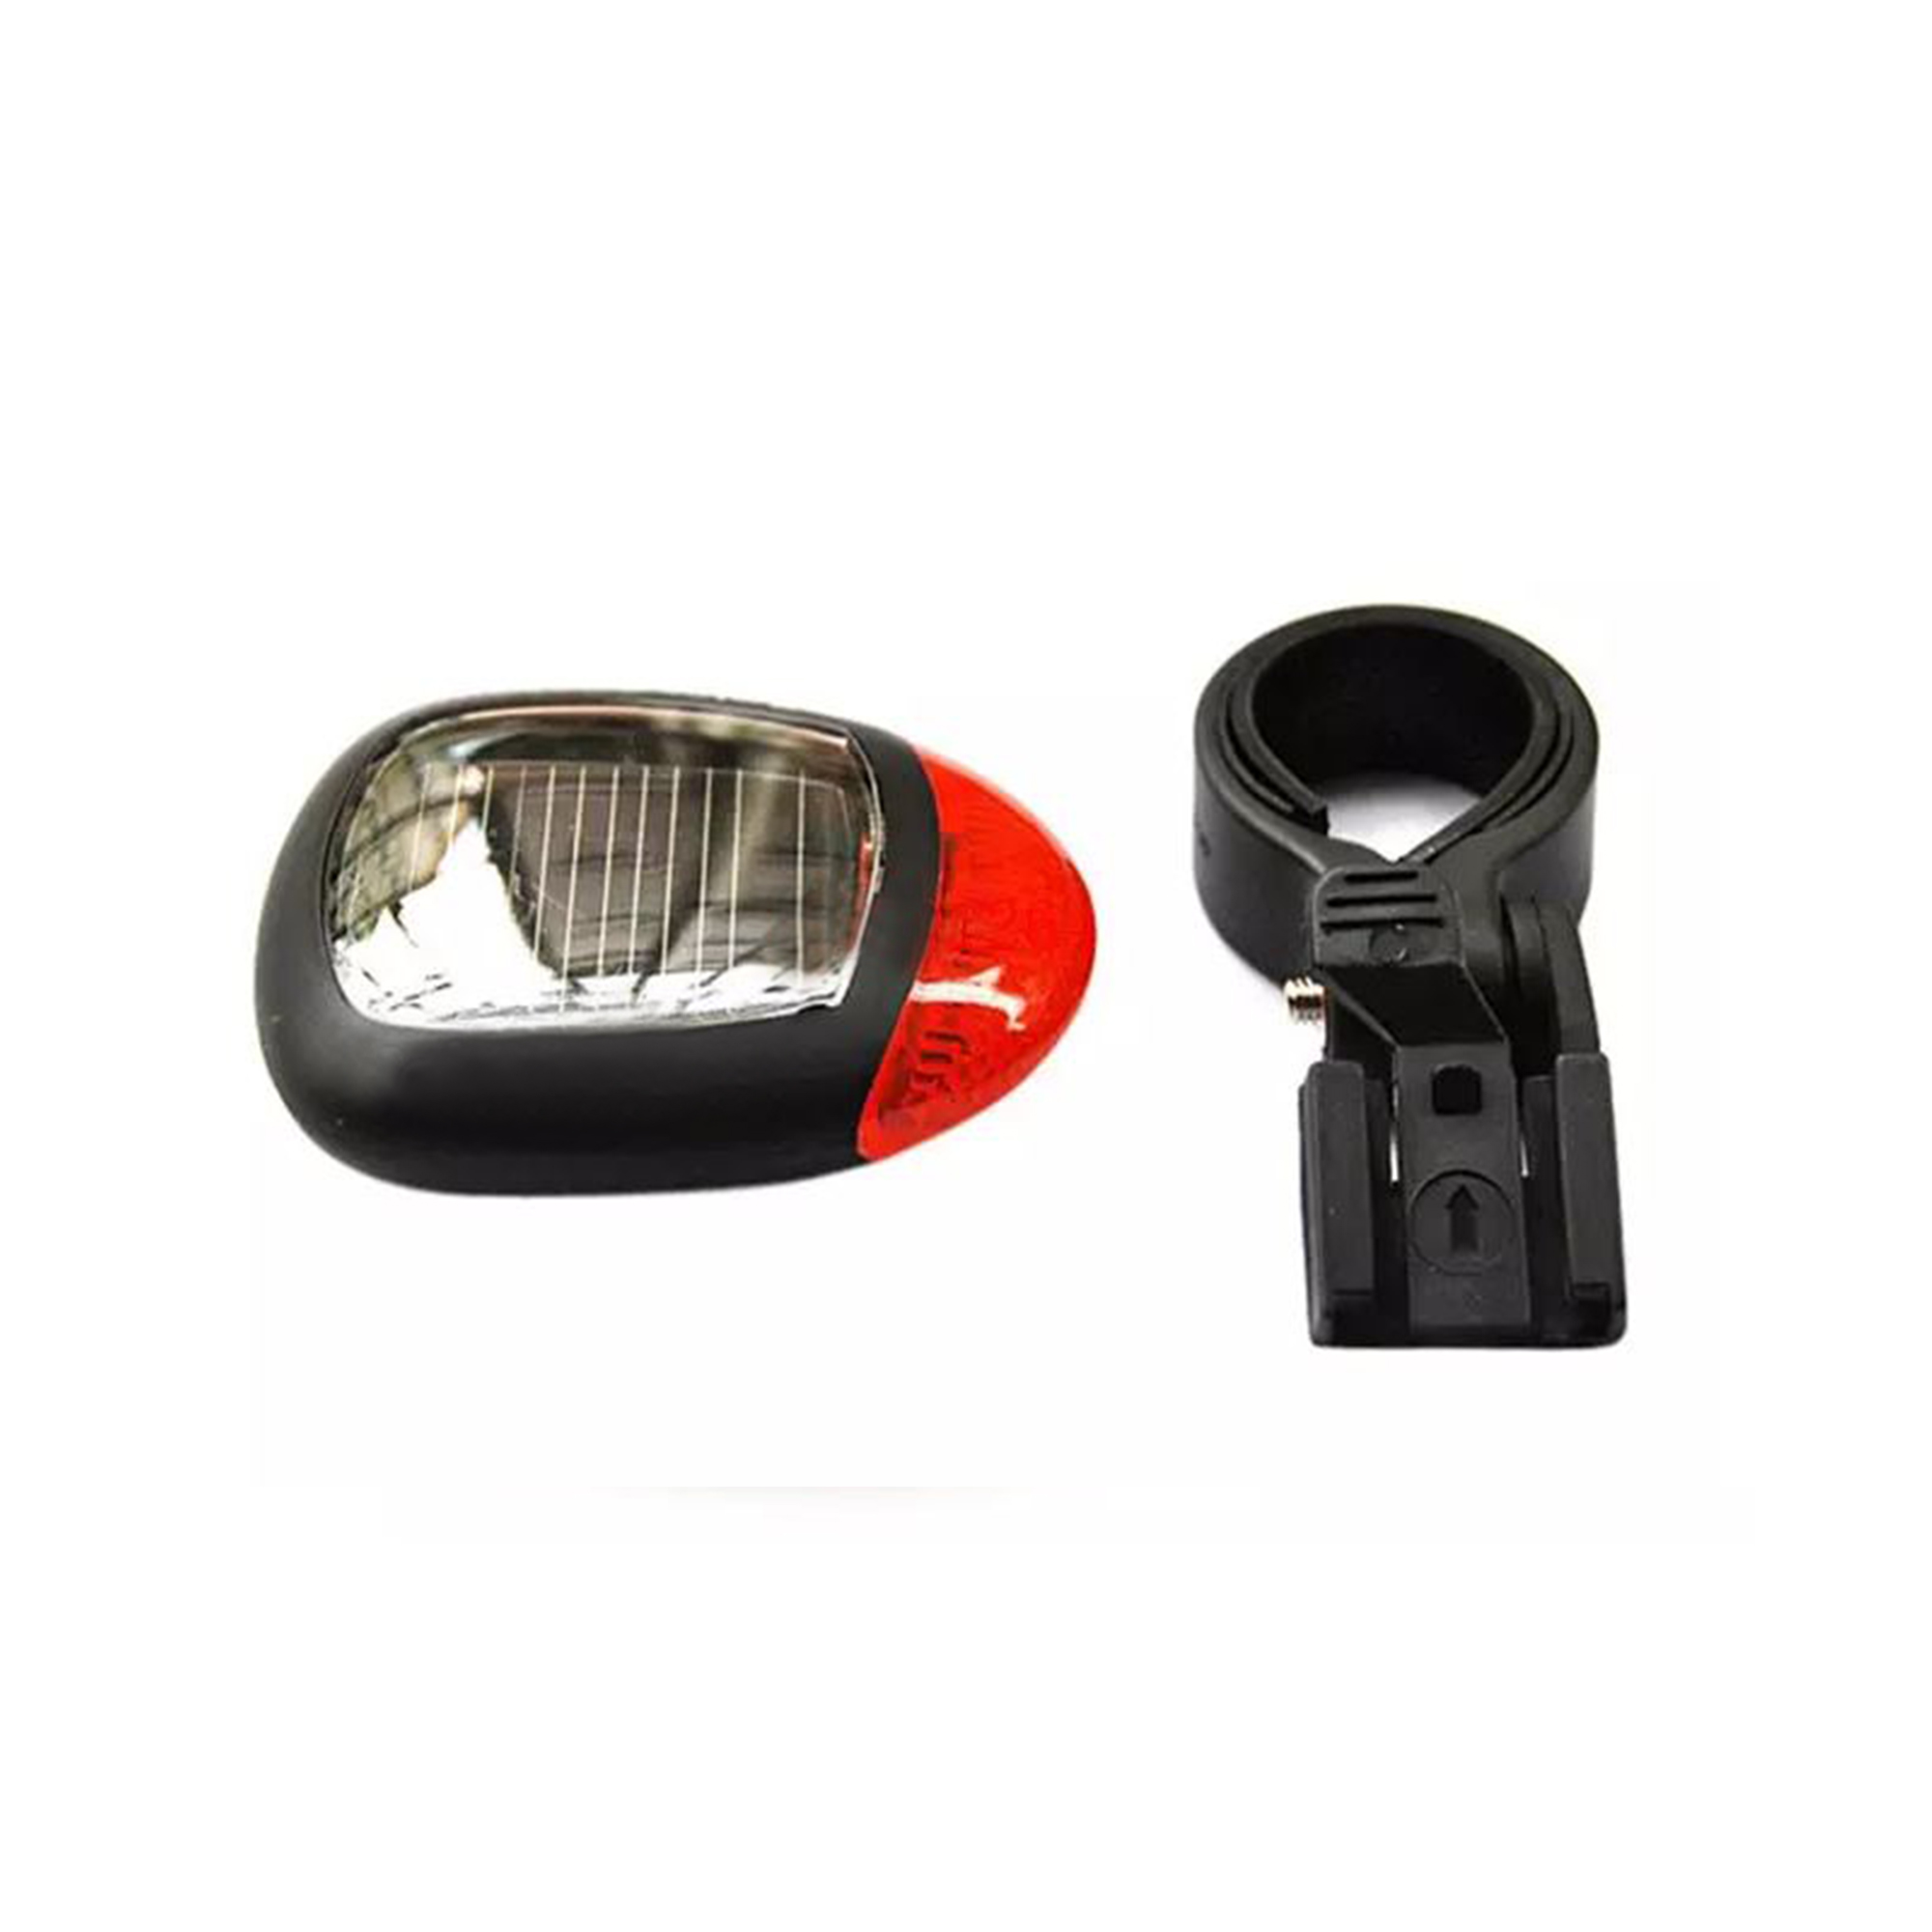 IAG-Solar-Flashing-LED-Bike-Safety-Light-2